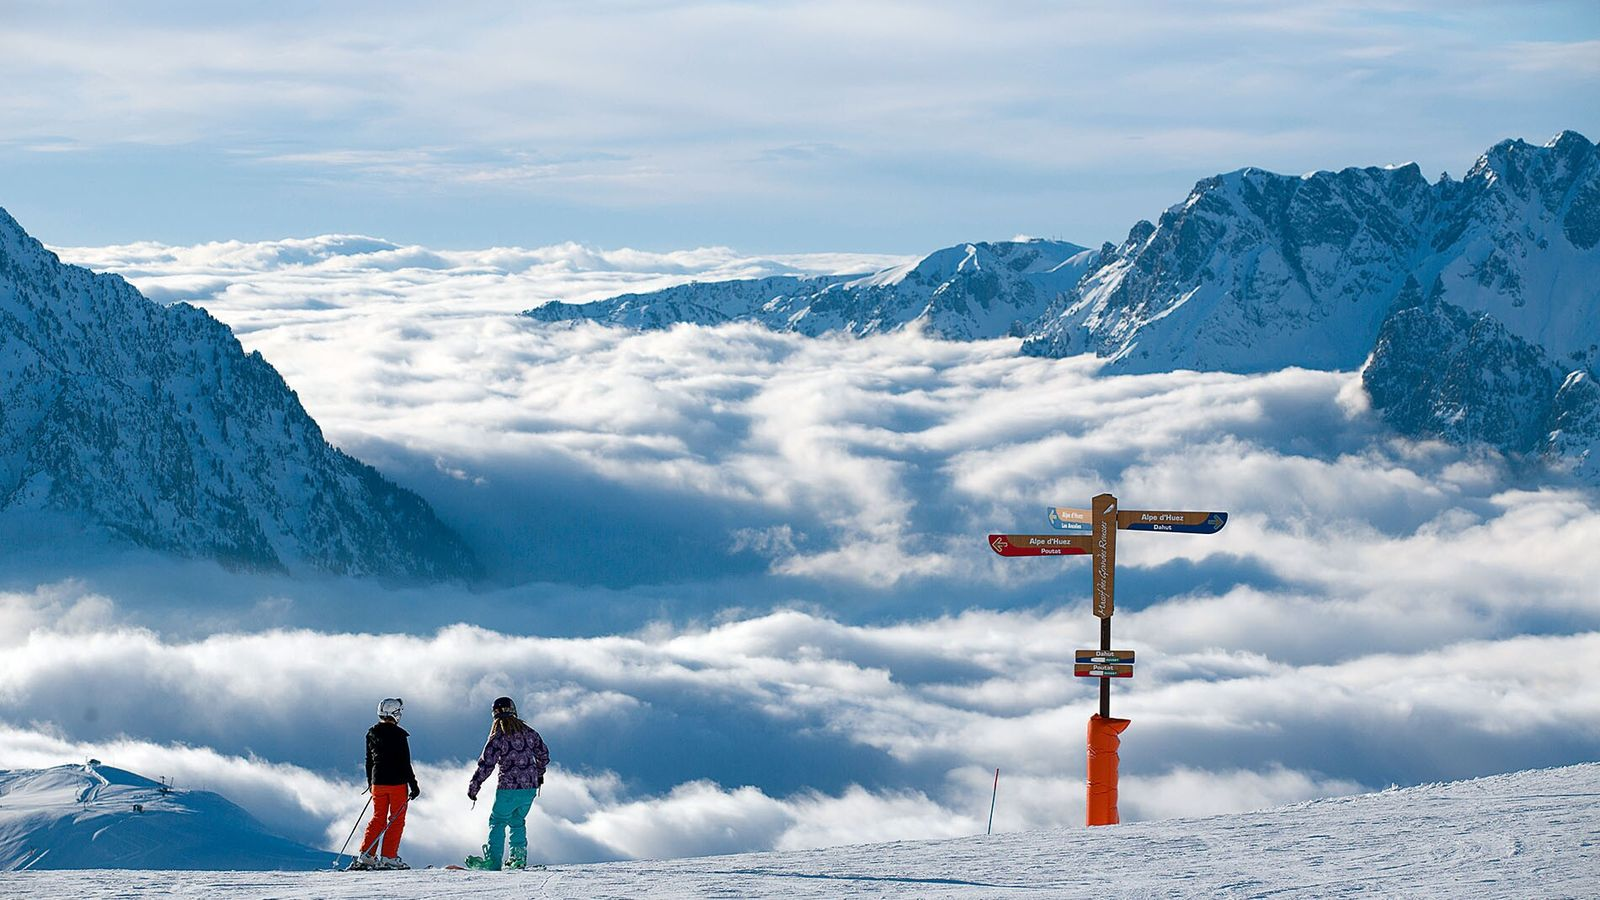 Skiiers stop to catch their breath while taking in a view of the Grandes Rousses massif from ...